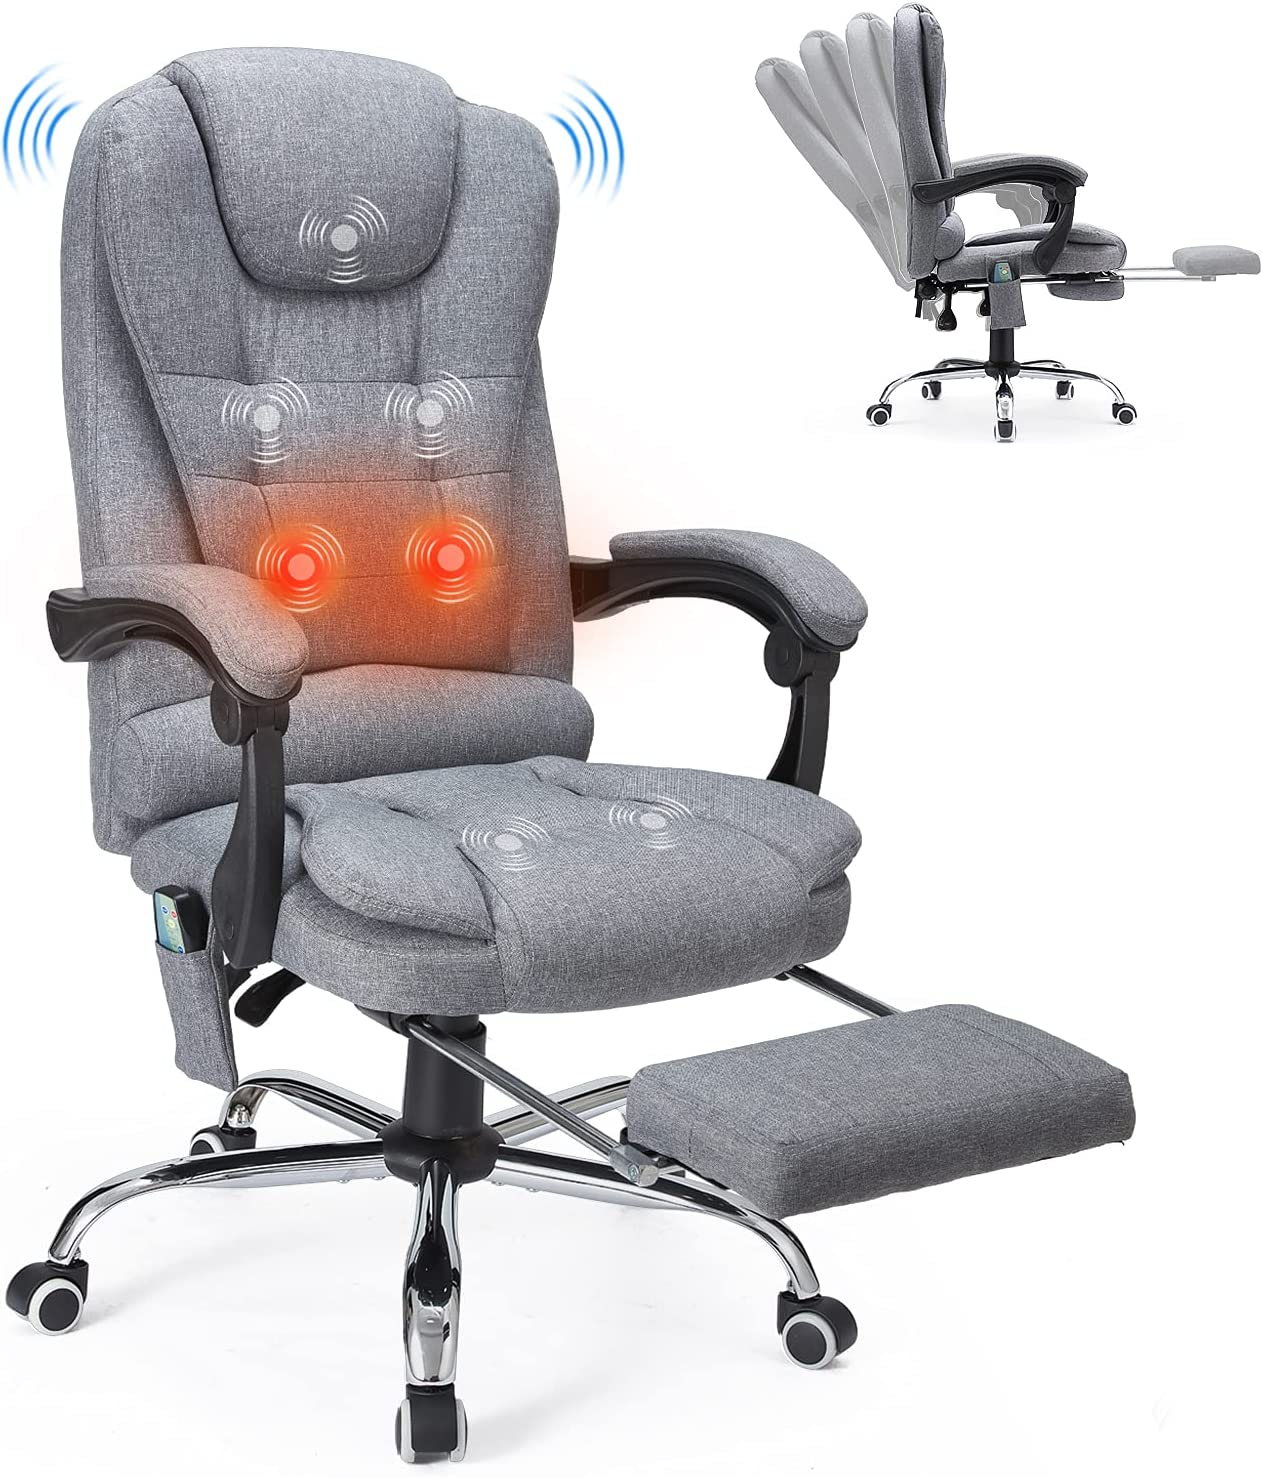 YODOLLA Bombing 55% OFF new work Ergonomic Reclining Office Chair with F Massage and Heat